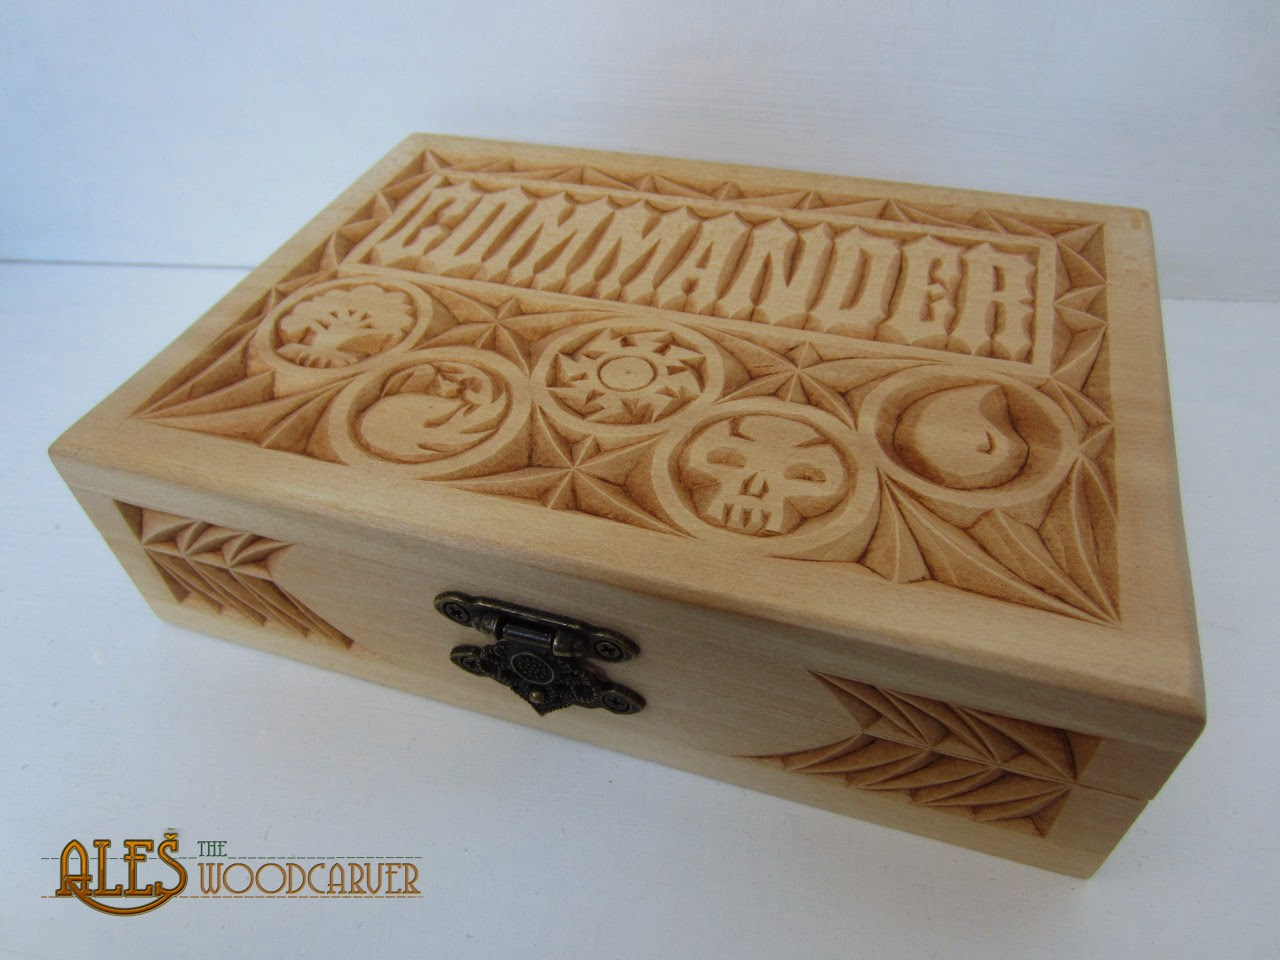 Ales the woodcarver mtg card boxes for commander decks